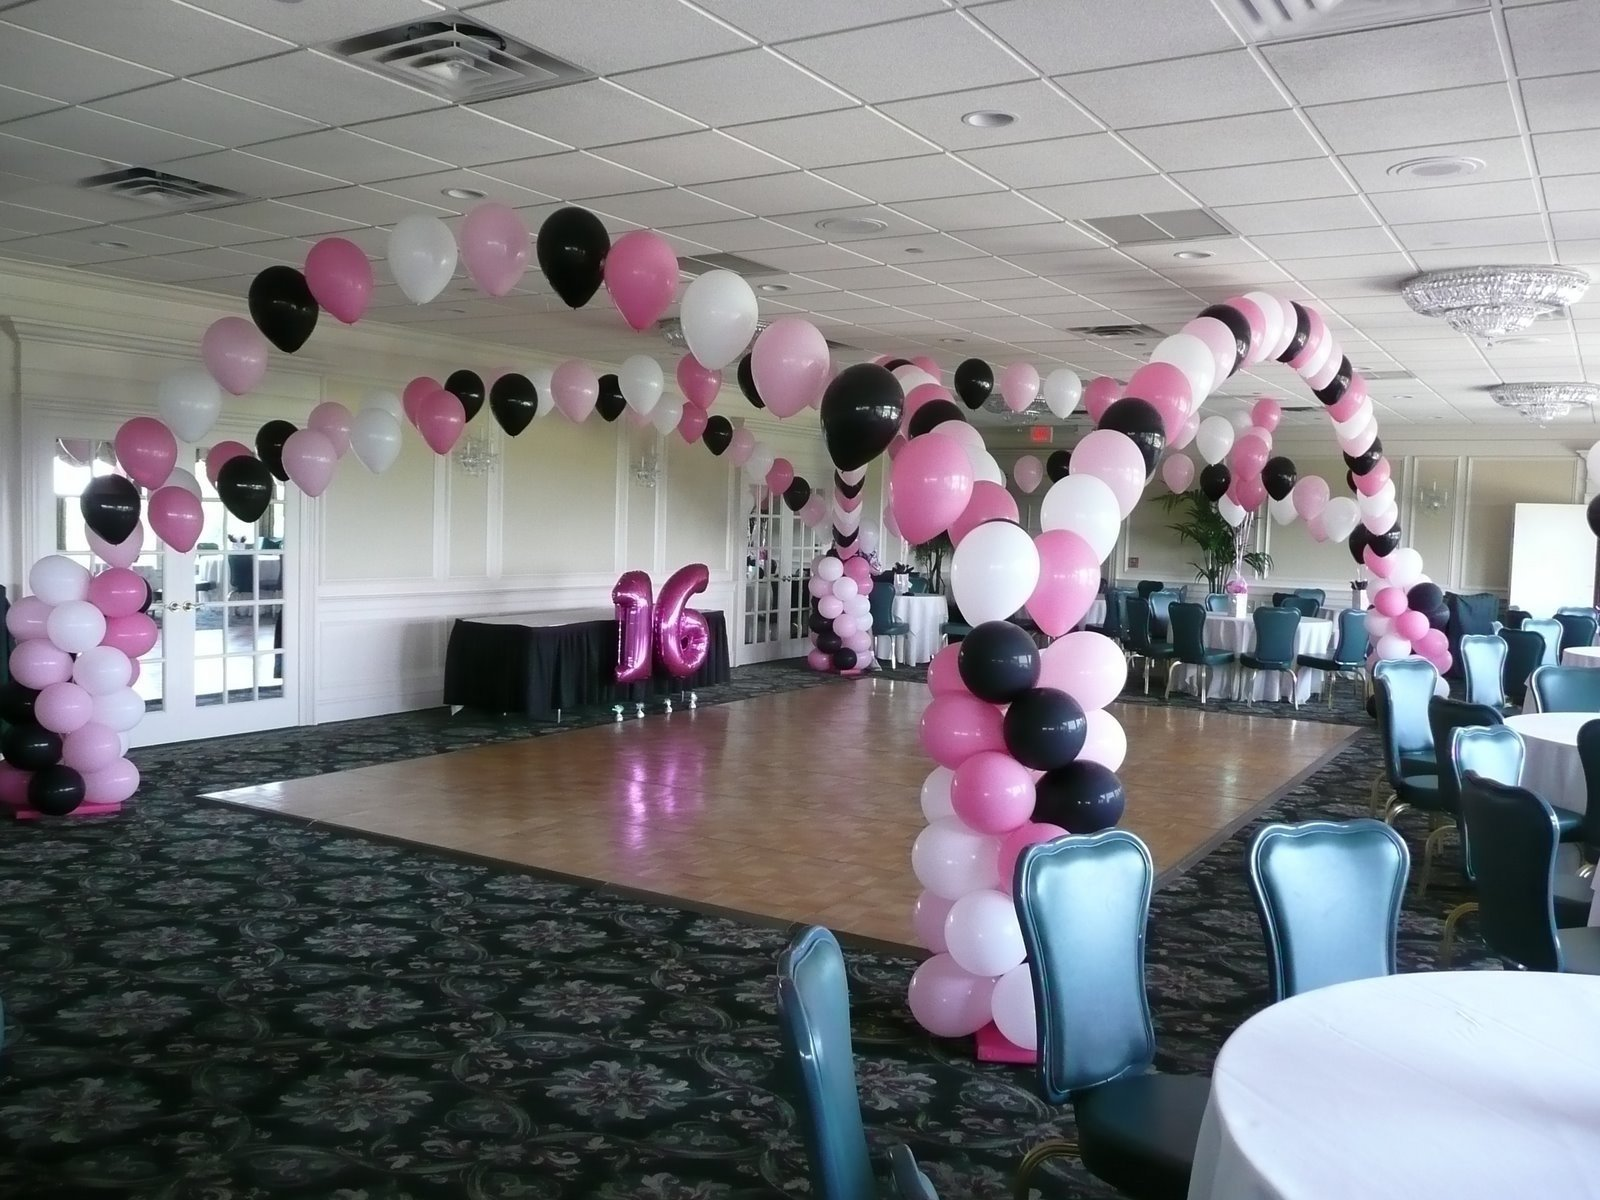 10 Most Popular Sweet 16 Party Decoration Ideas awesome sweet 16 party decorations all in home decor ideas ideas